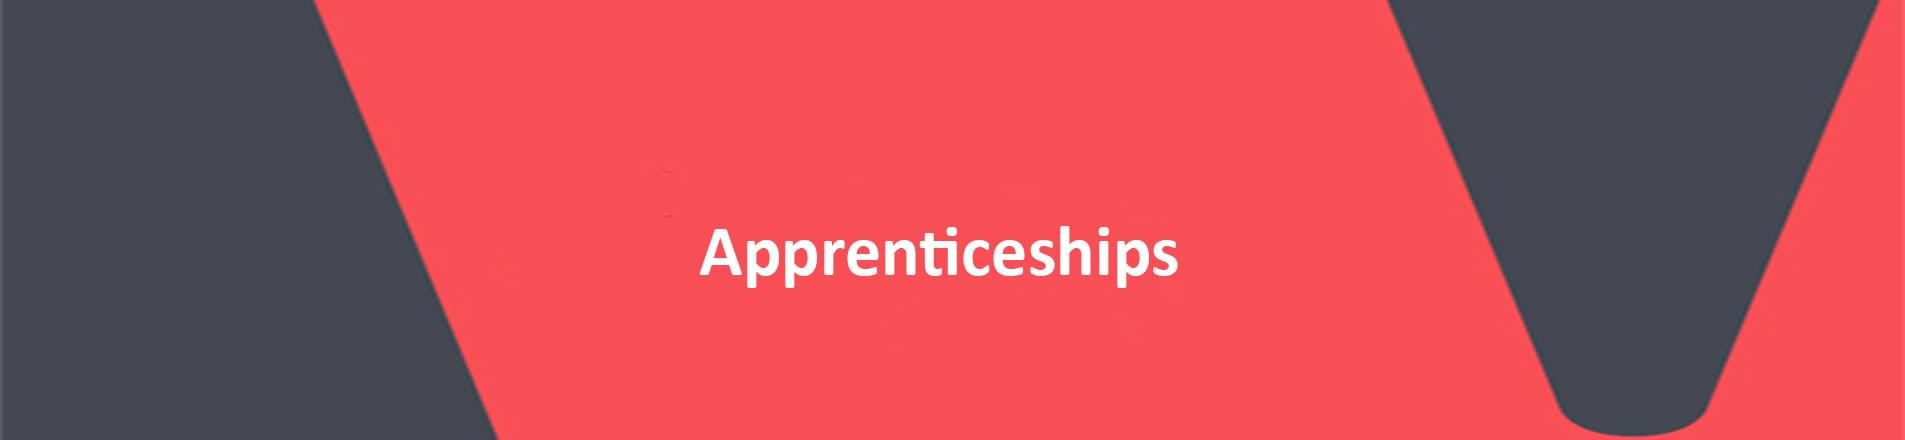 The word 'Apprenticeships ' on red VERCIDA background